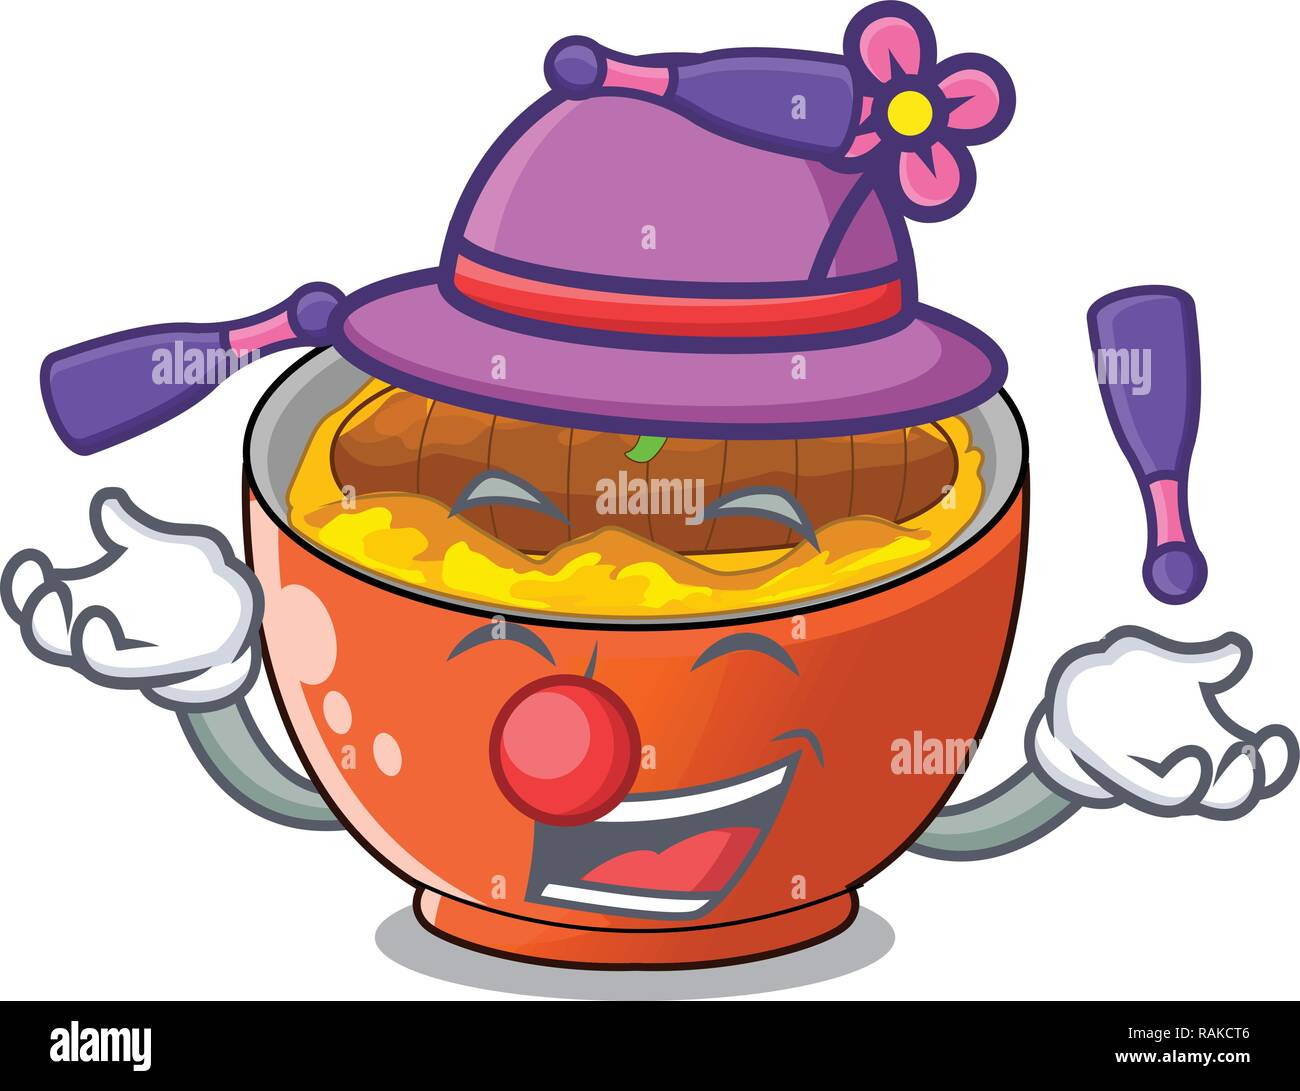 Juggling katsudon is served on mascot plate - Stock Vector